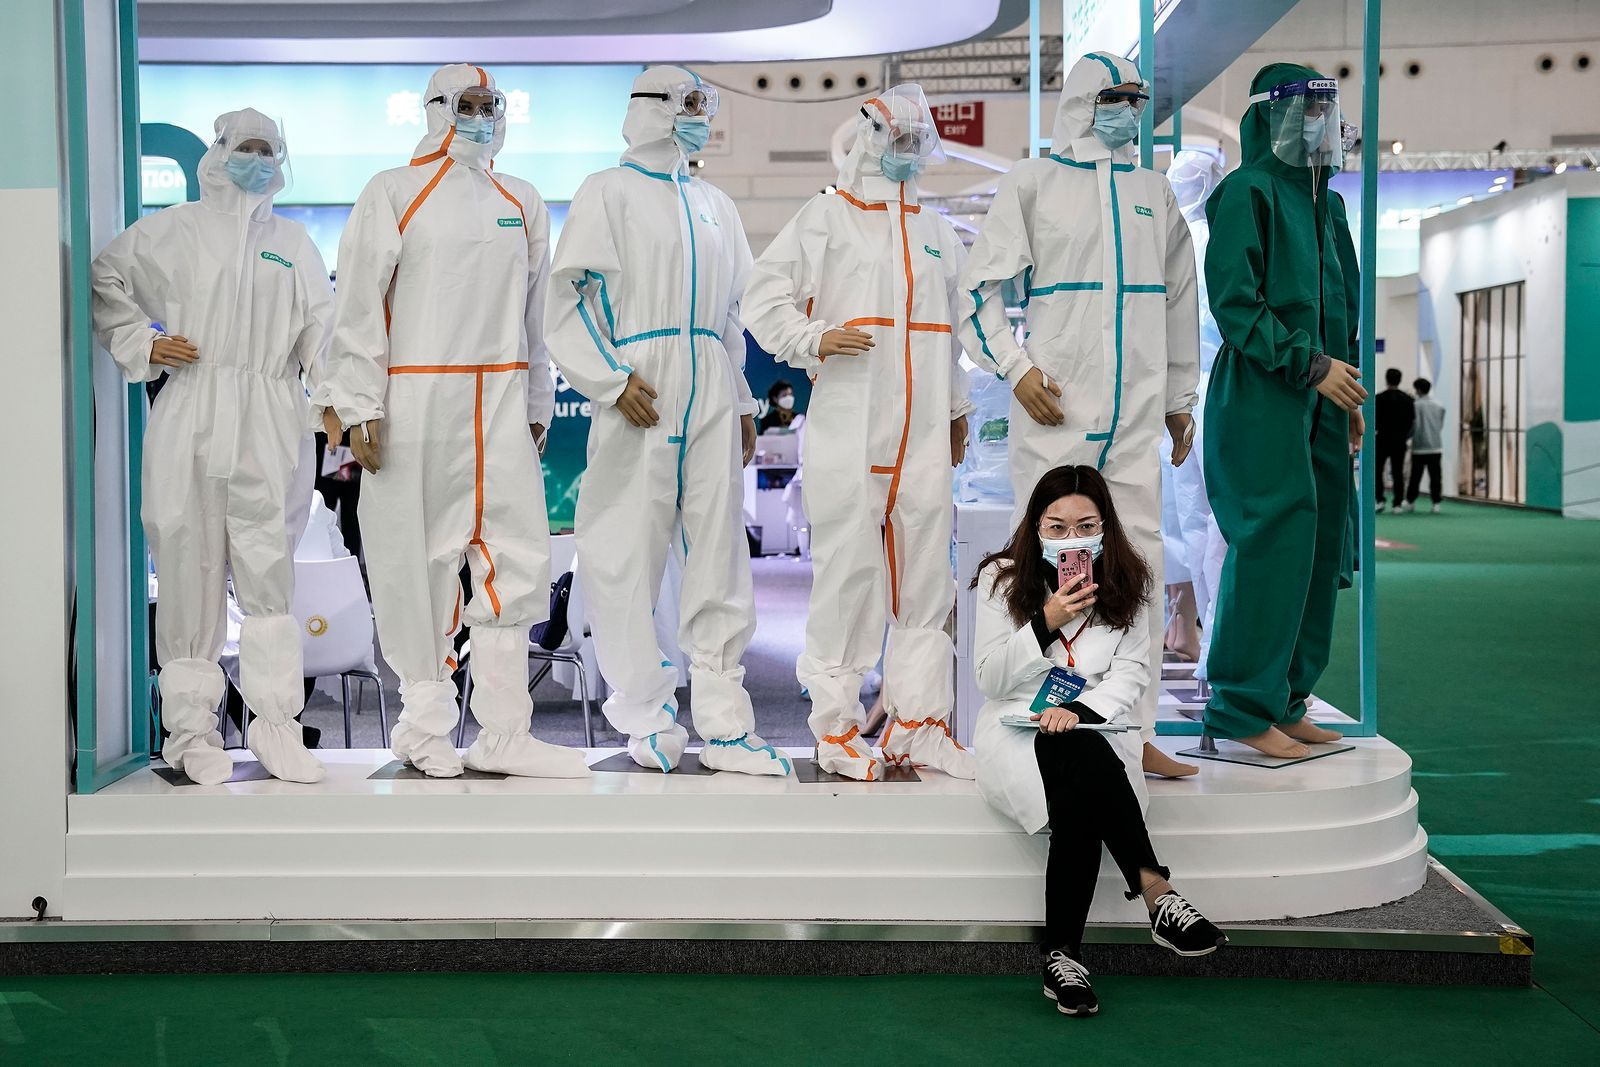 The 2nd World Health Expo In Wuhan After Outbreak Of Coronavirus